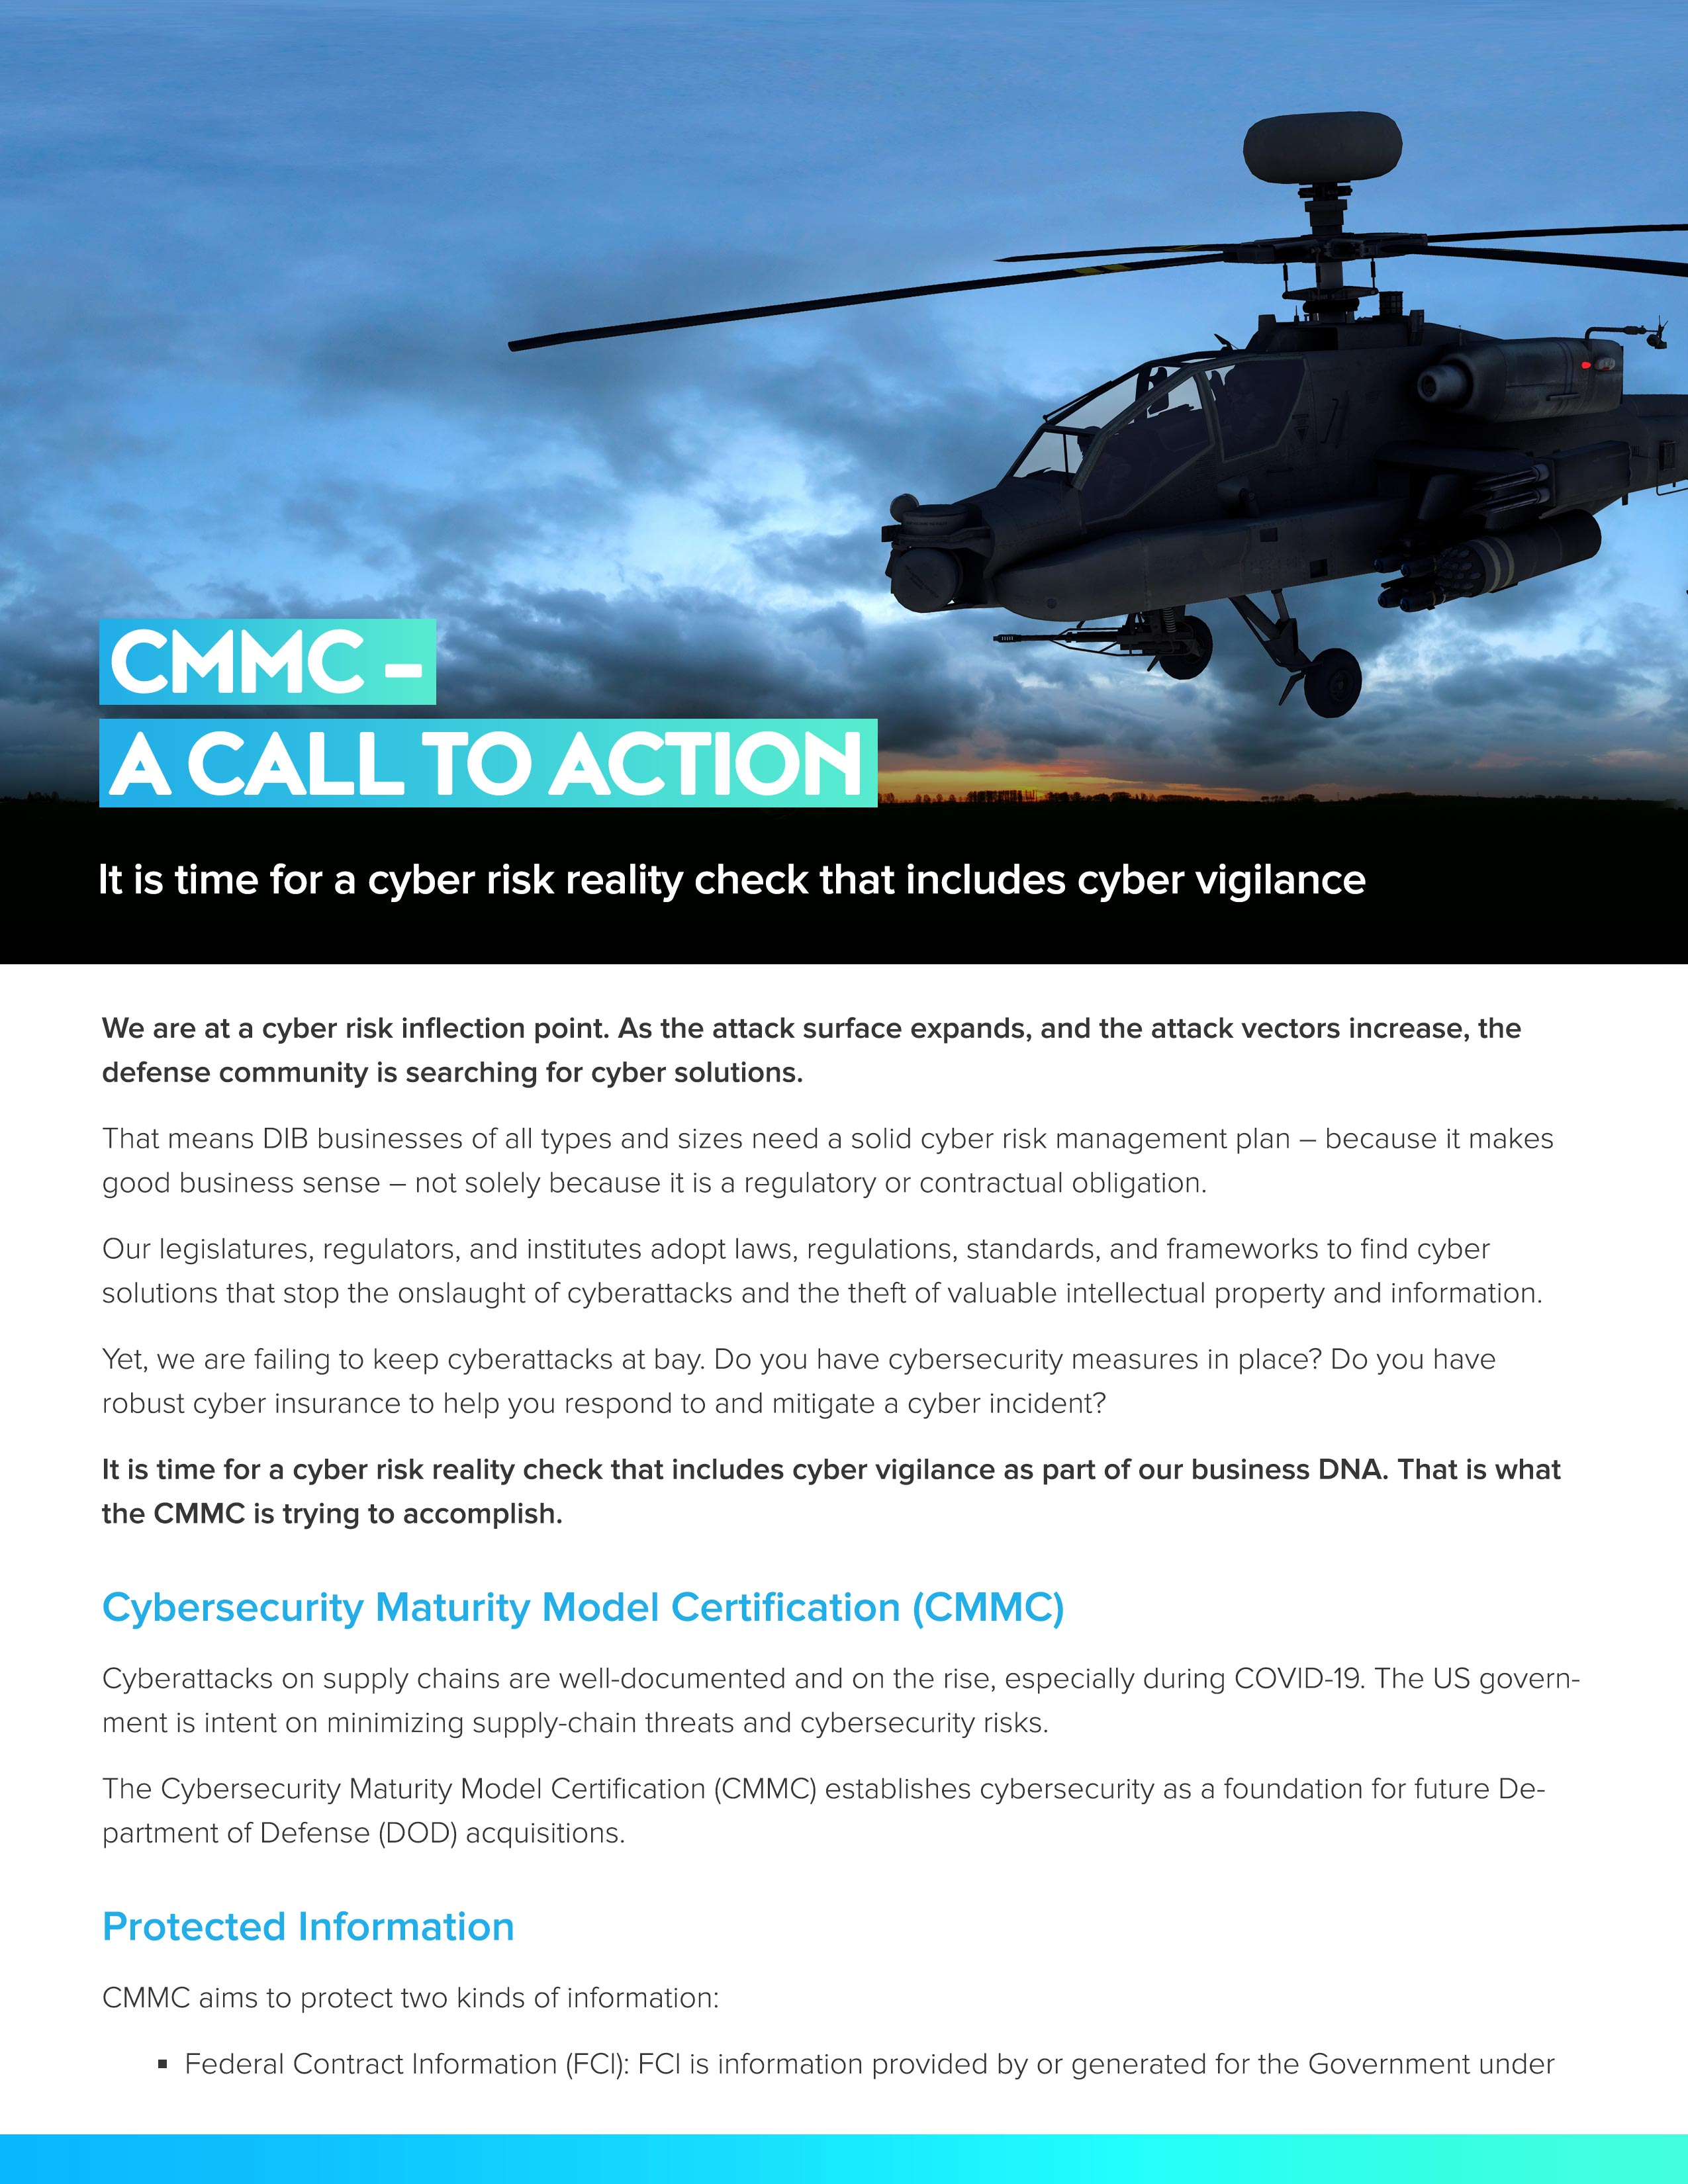 CMMC - A Call to Action